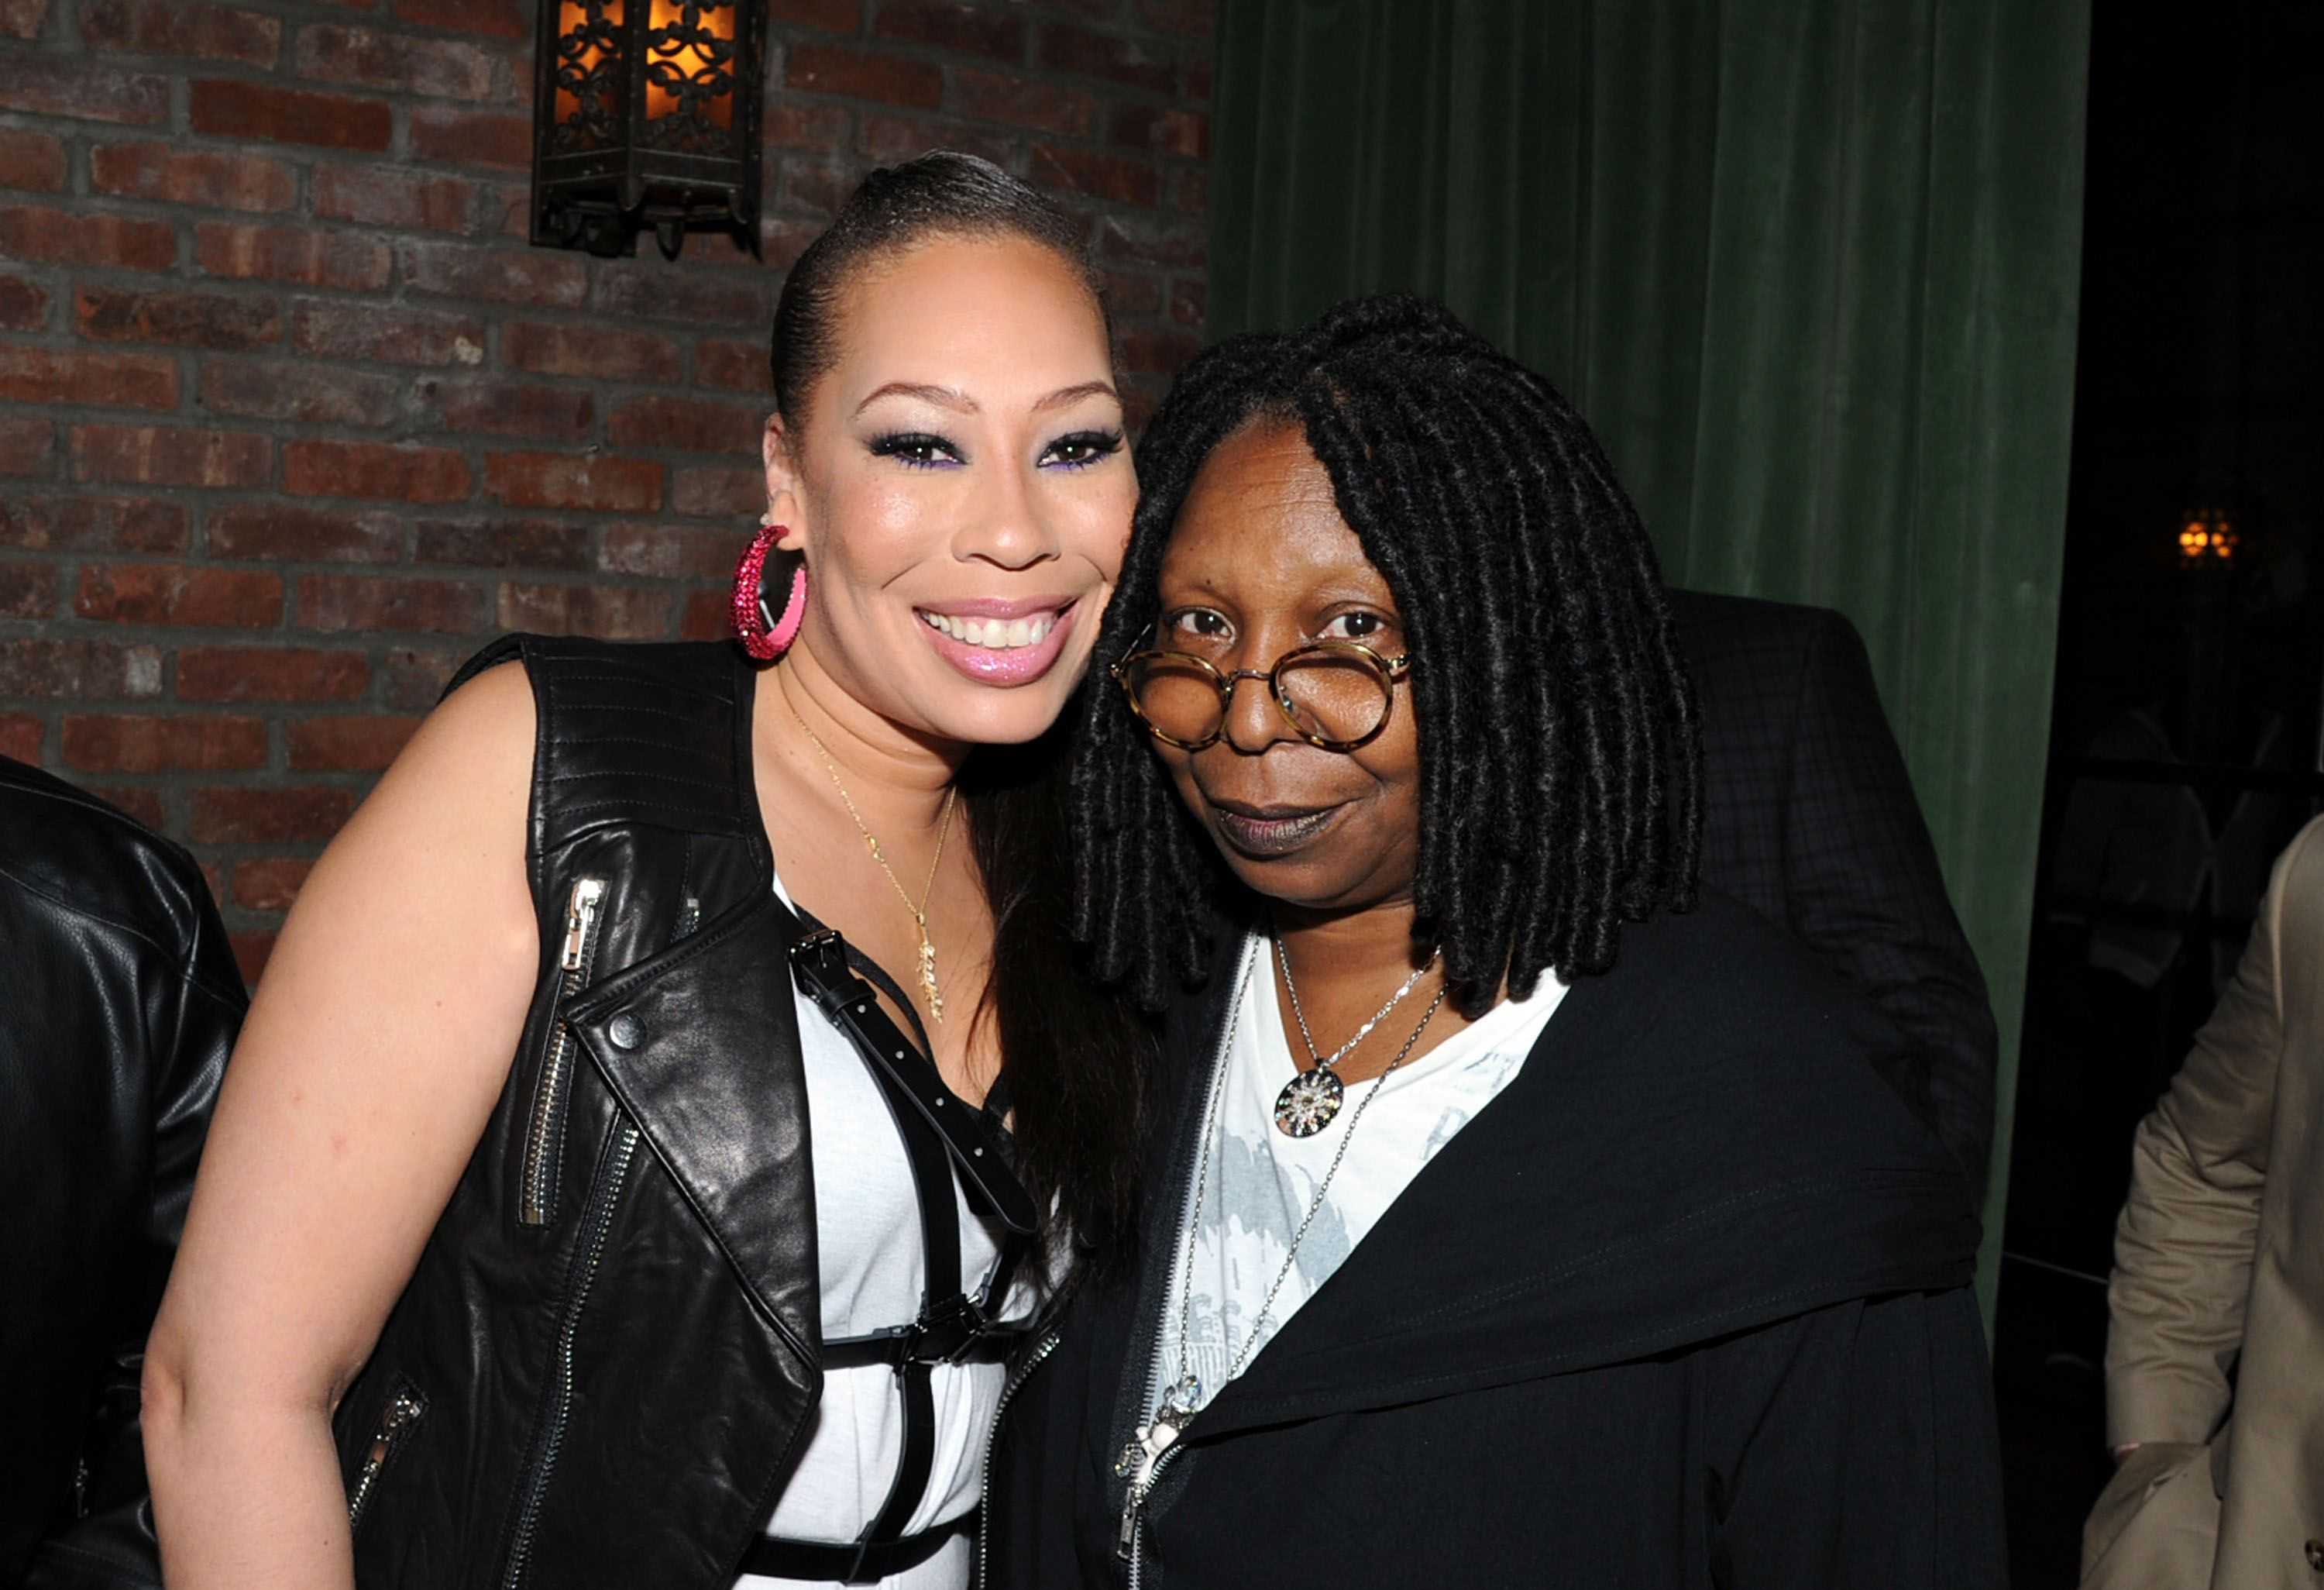 """Alex Martin and Whoopi Goldberg during the former's """"40 and Fly"""" birthday celebration at The Bowery Hotel on May 9, 2014 in New York City. 